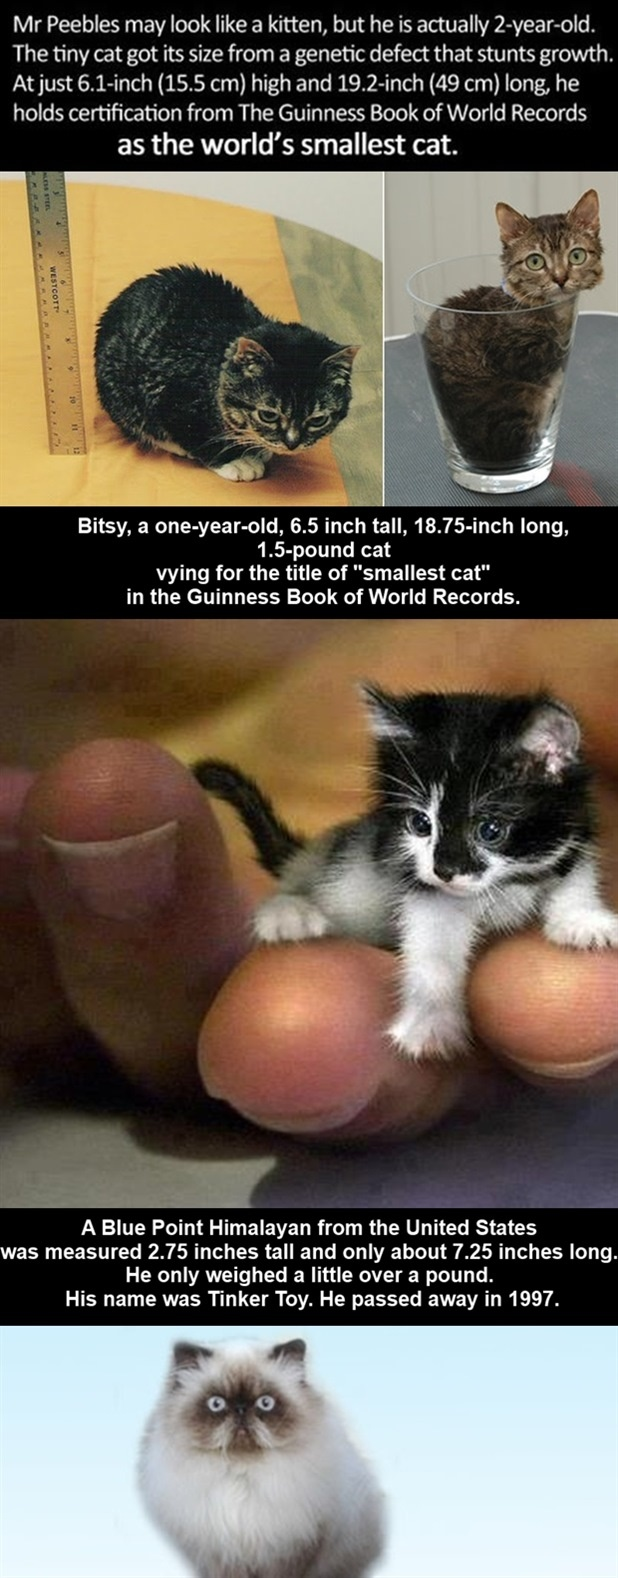 peebles smallest cat in the world - Smallest Cat In The World Guinness 2013